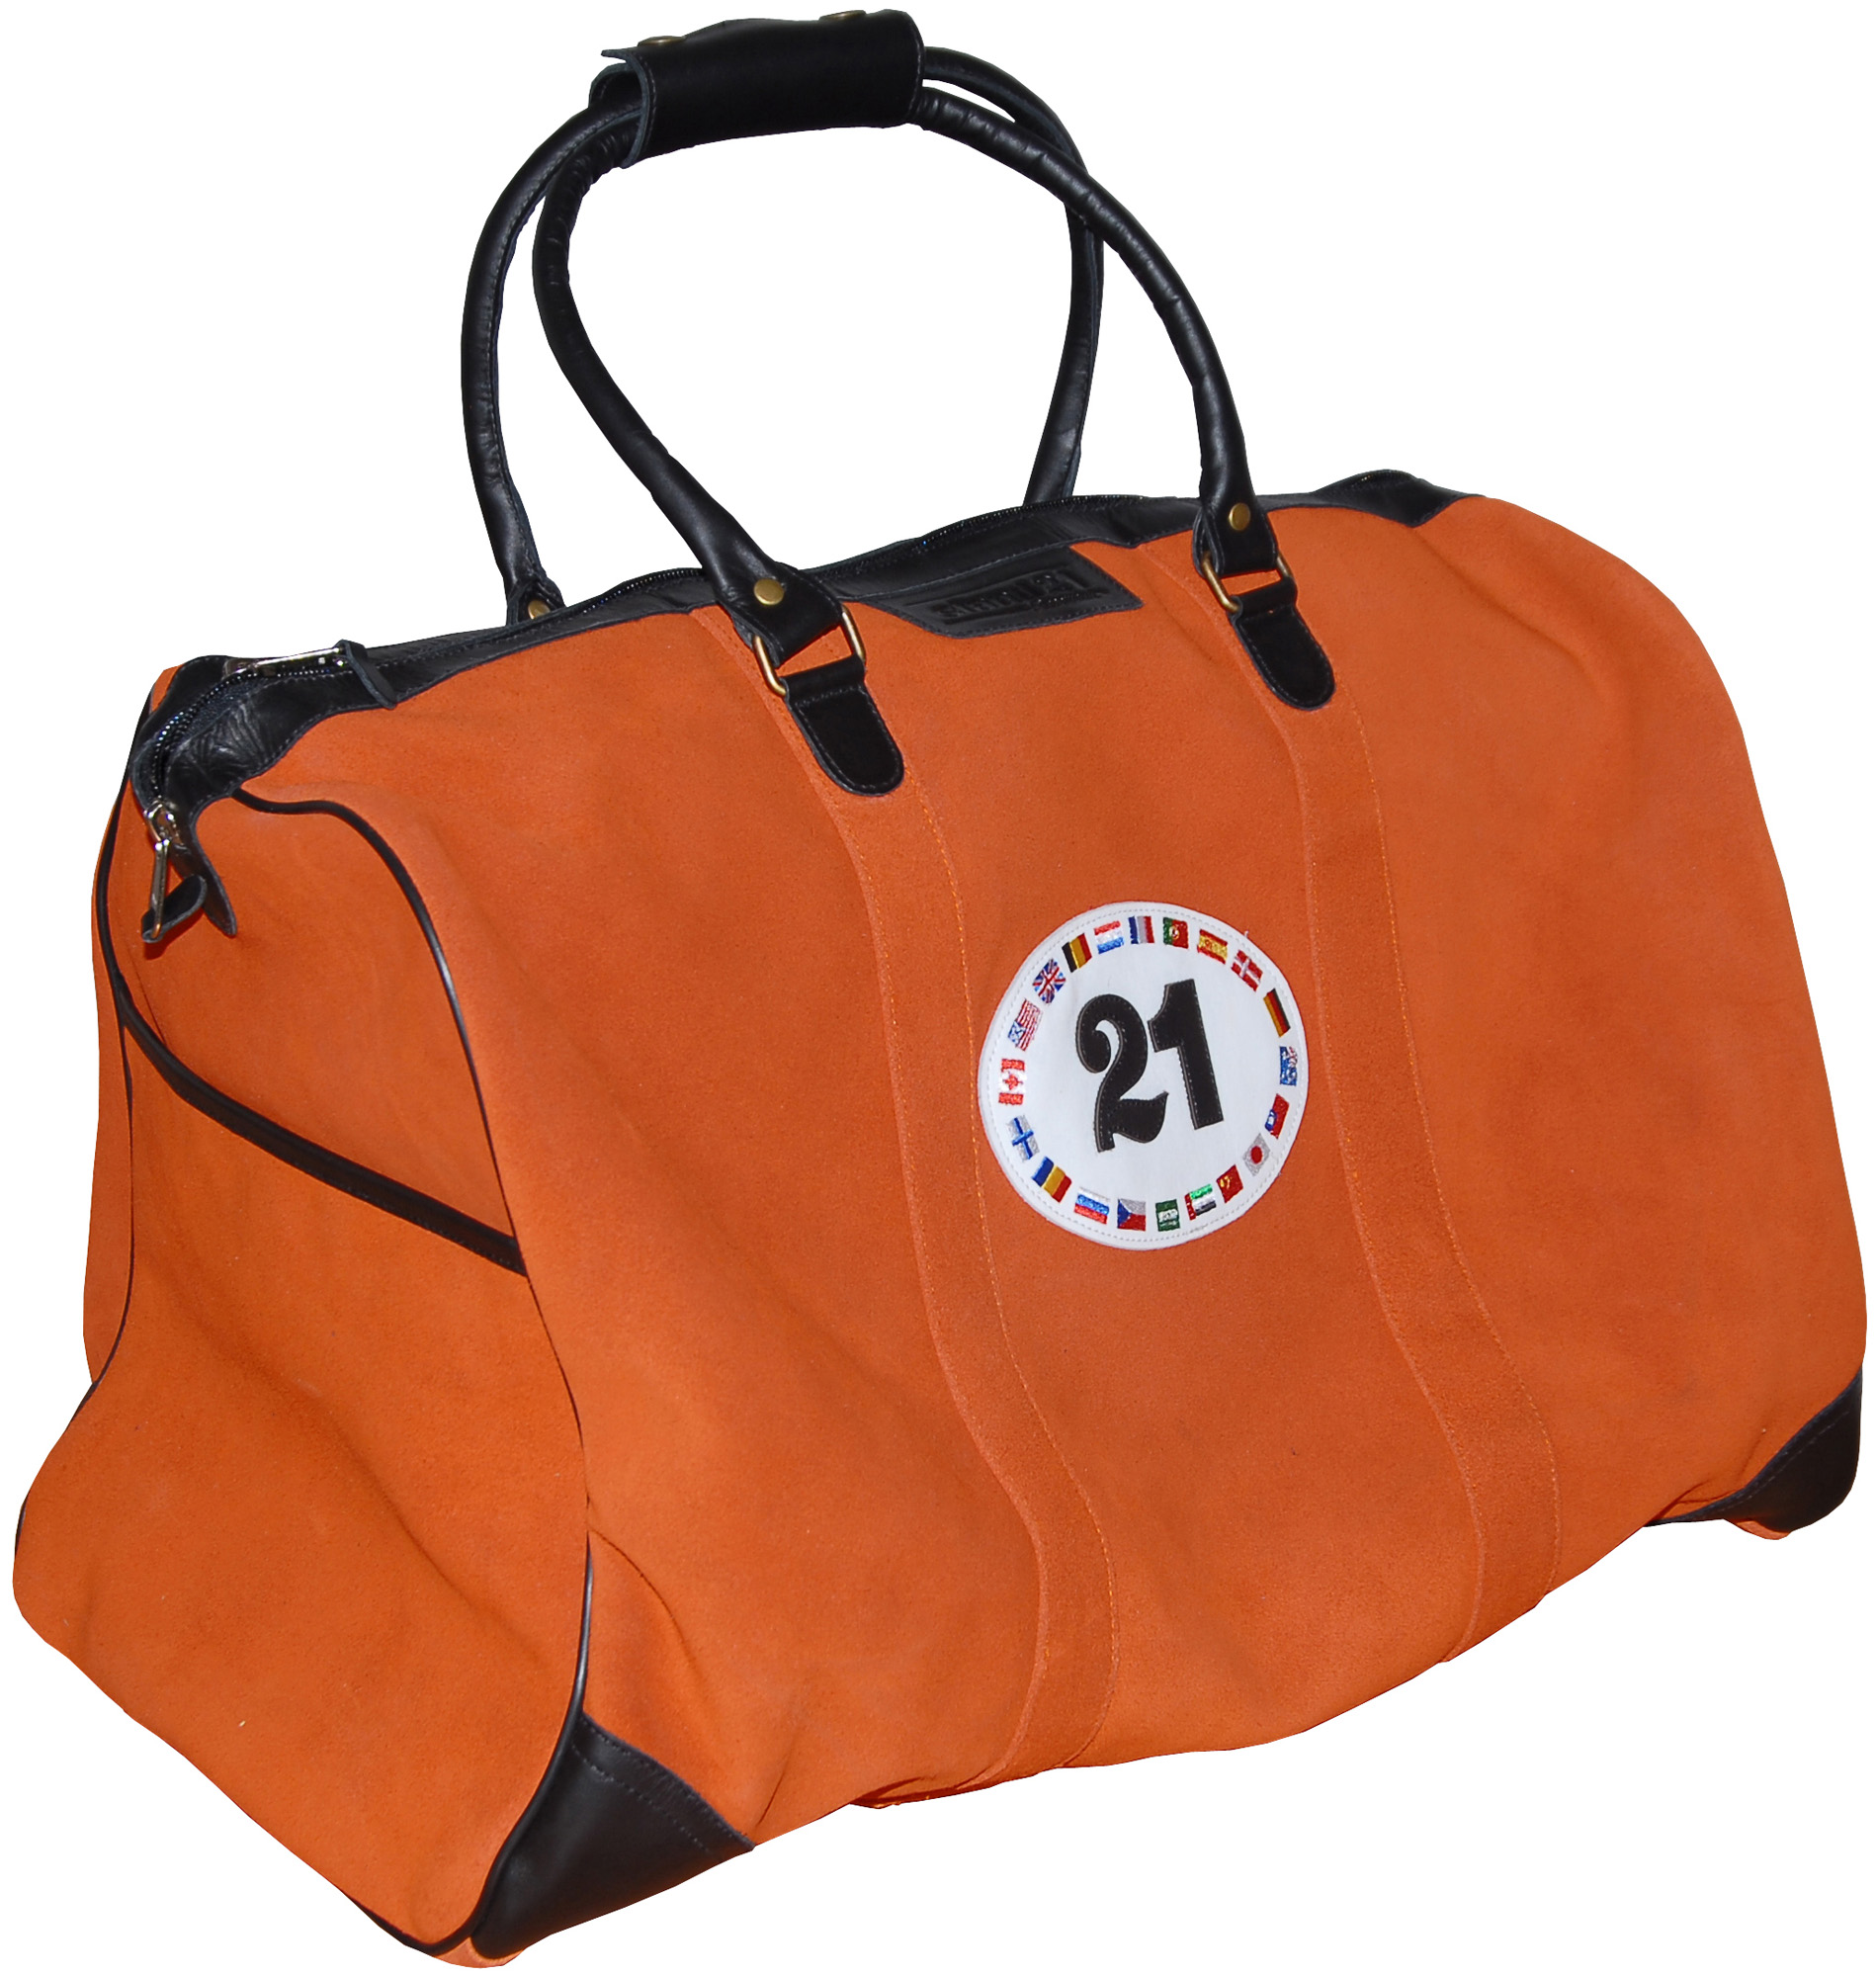 Orange leather travel bag